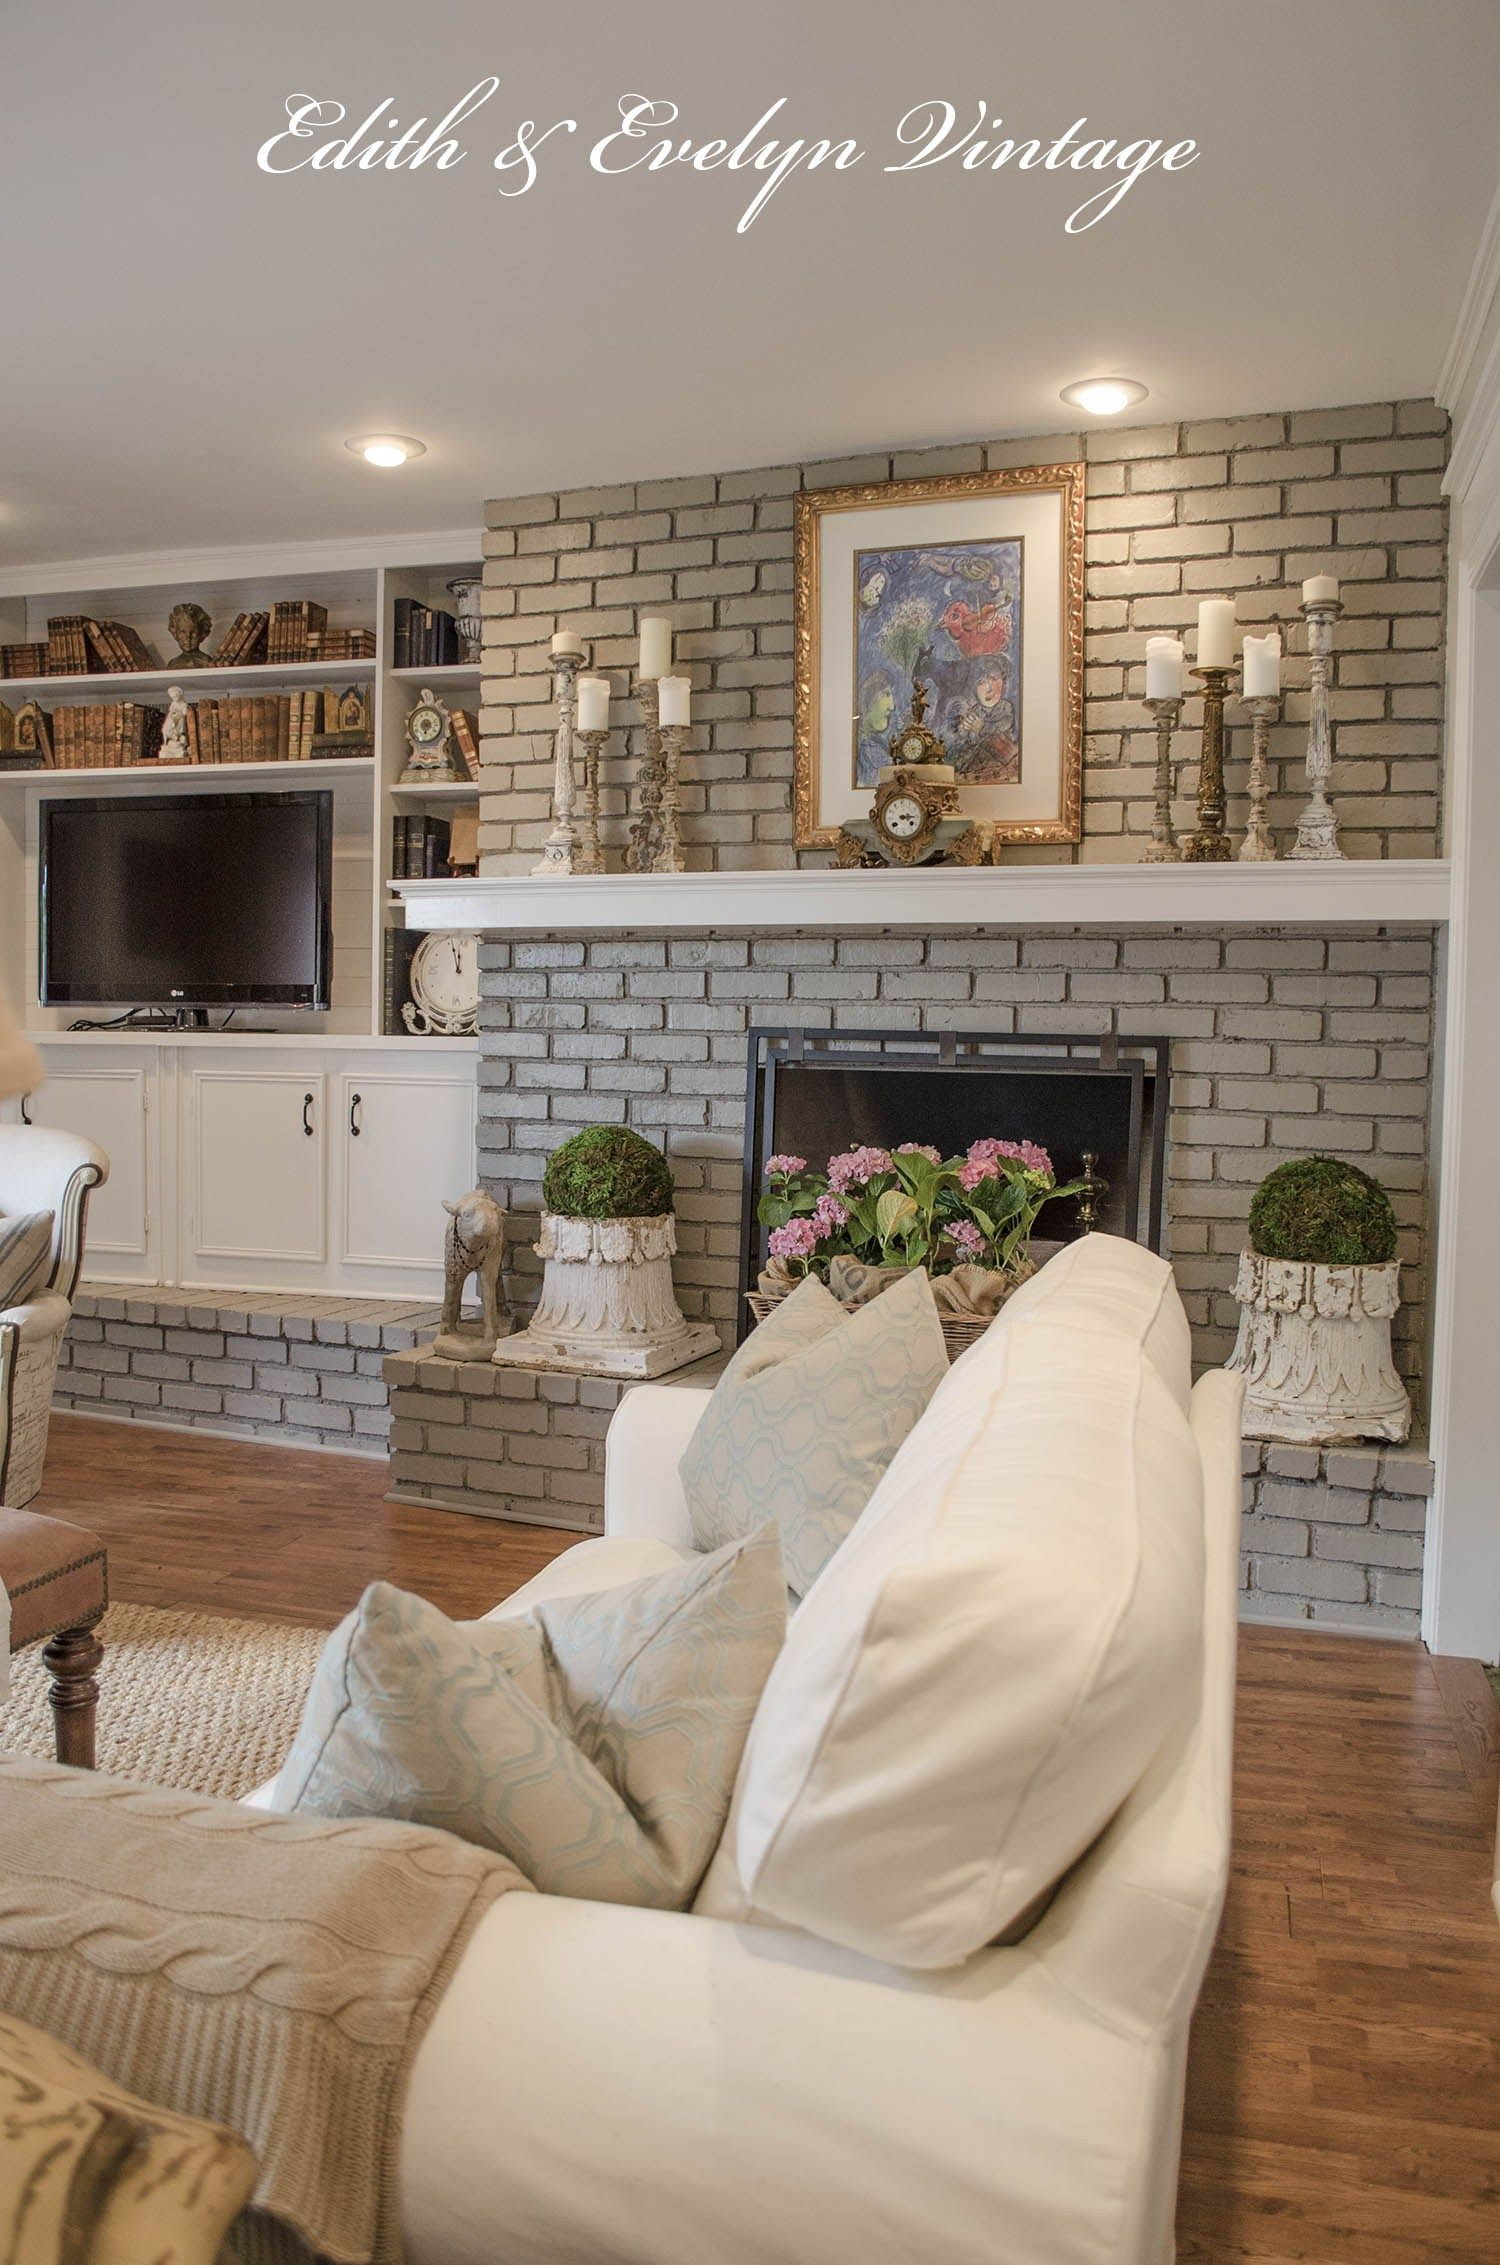 Beautiful french country fireplace renovation whole living room renovate update brick also best images house decorations interiors future rh pinterest